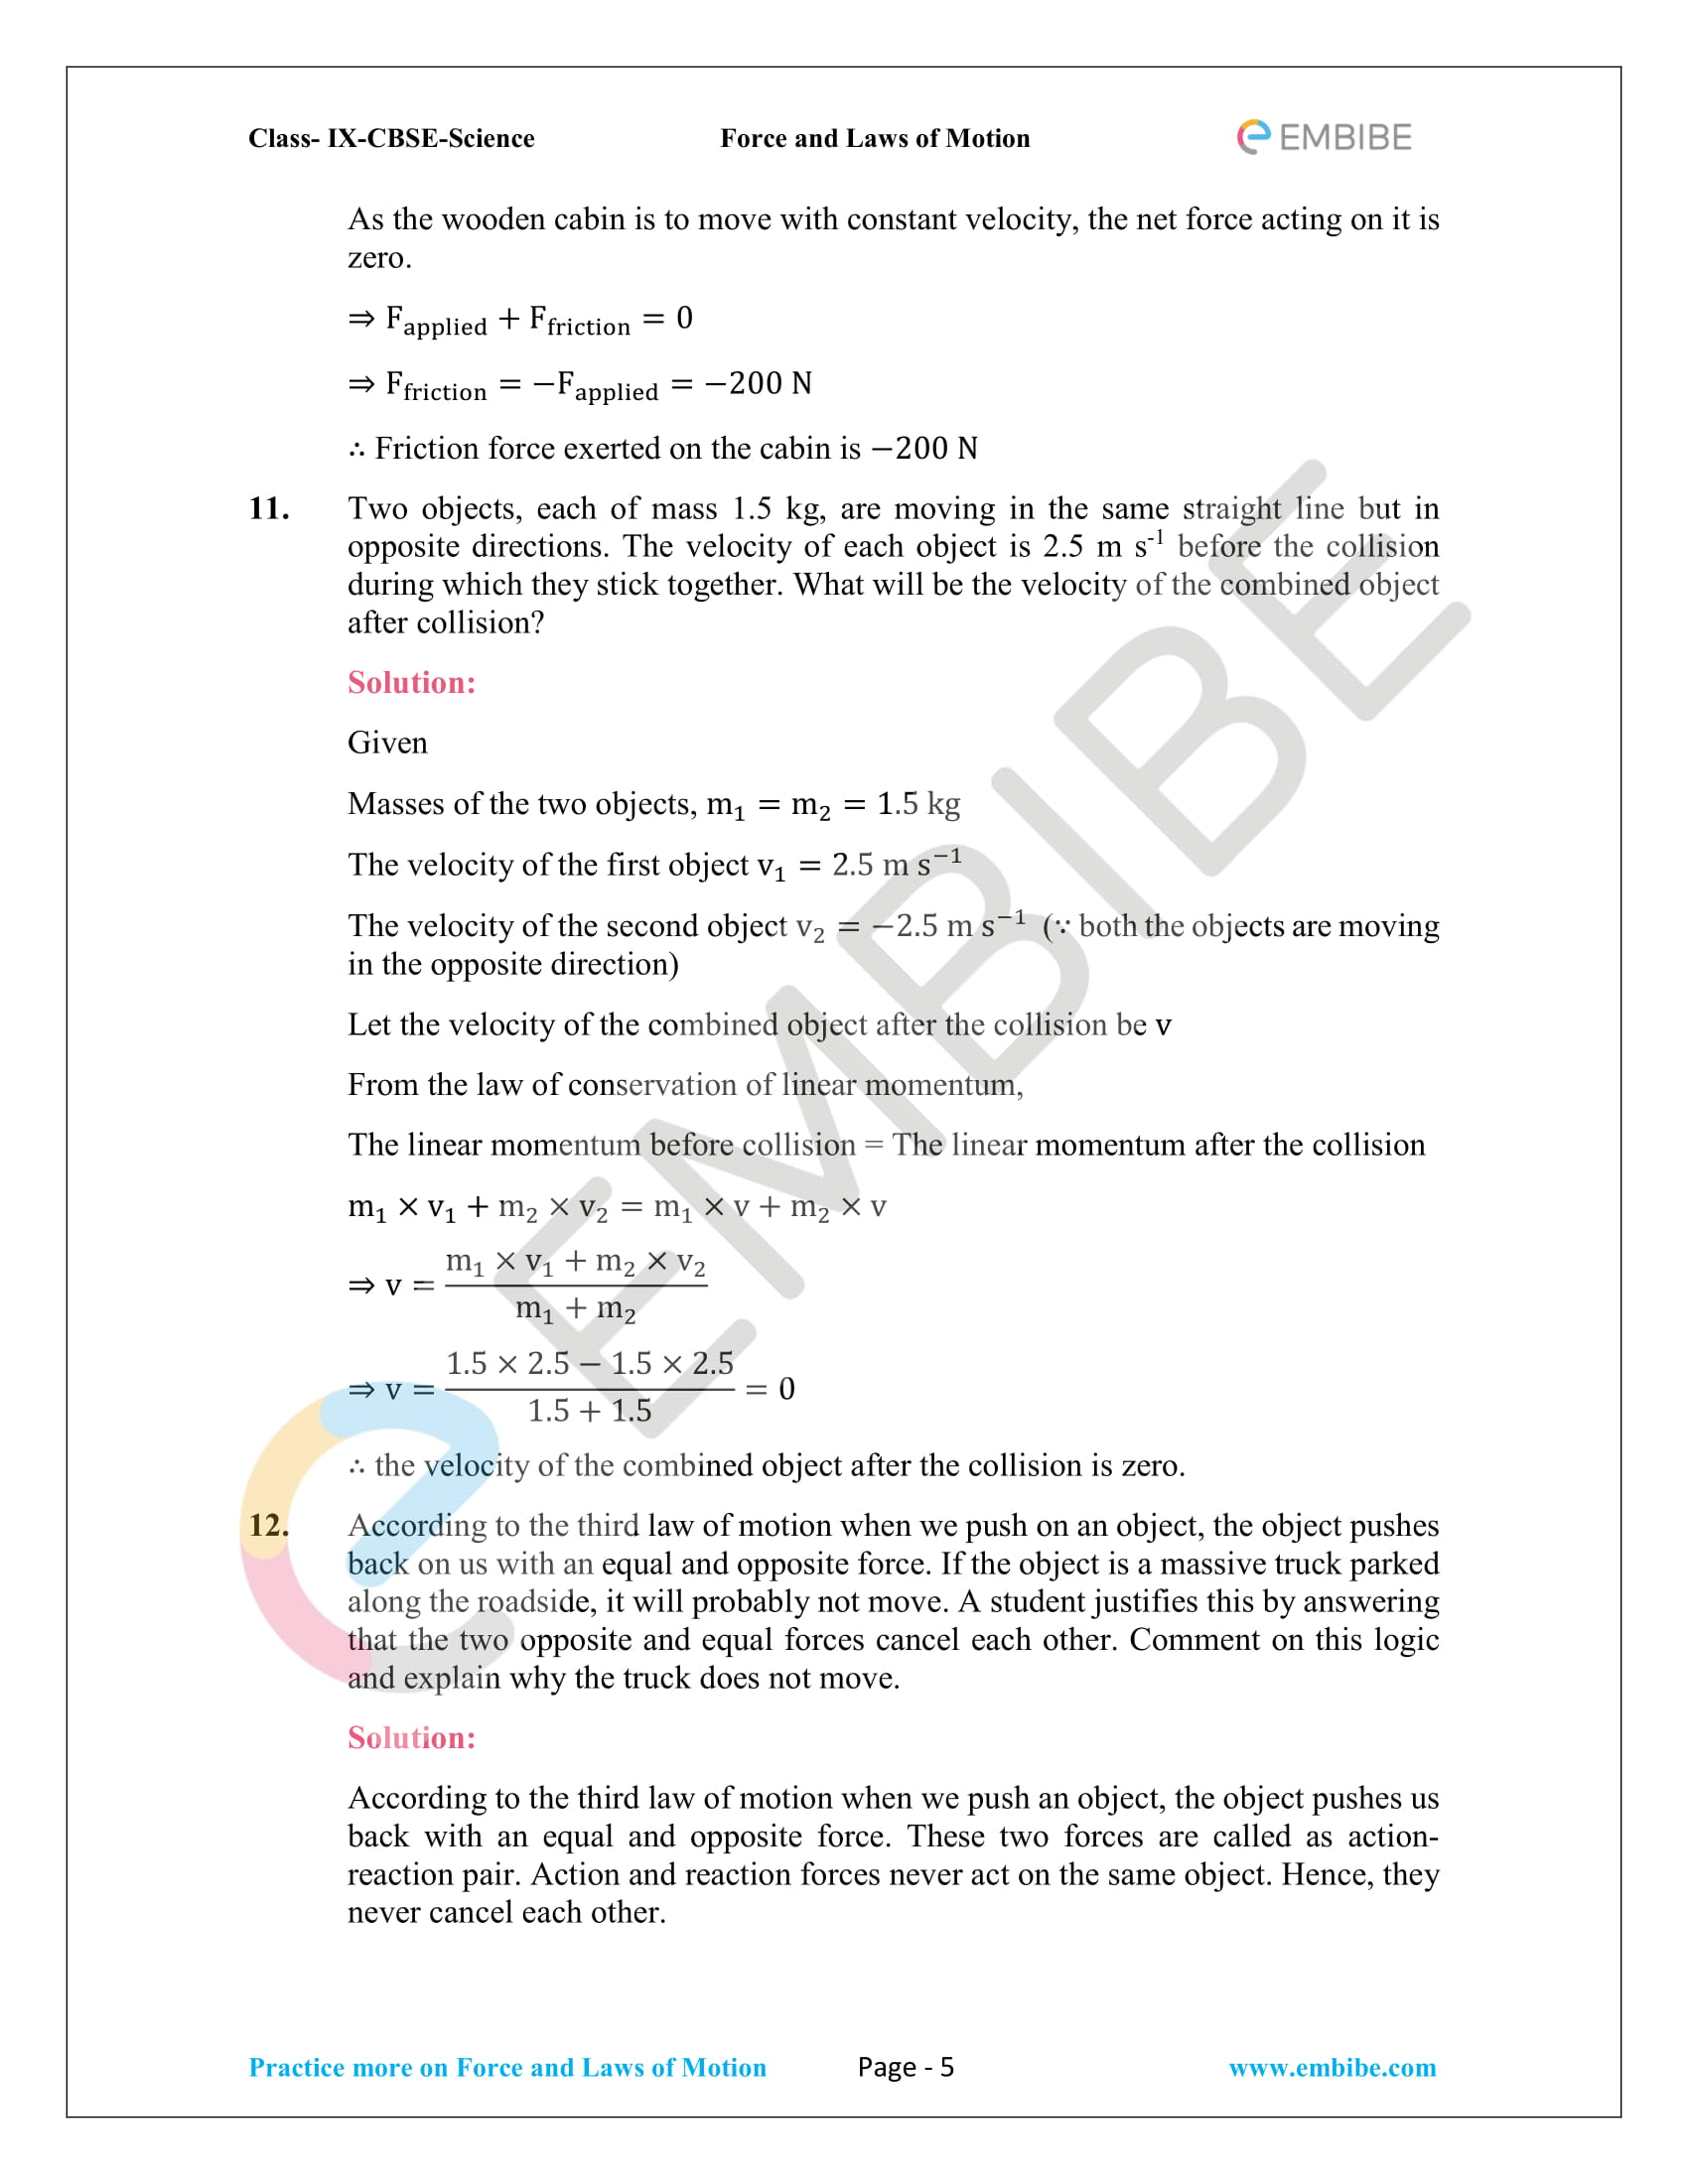 CBSE NCERT Solutions For Class 9 Science Chapter 9 – Force And Laws Of Motion - 5